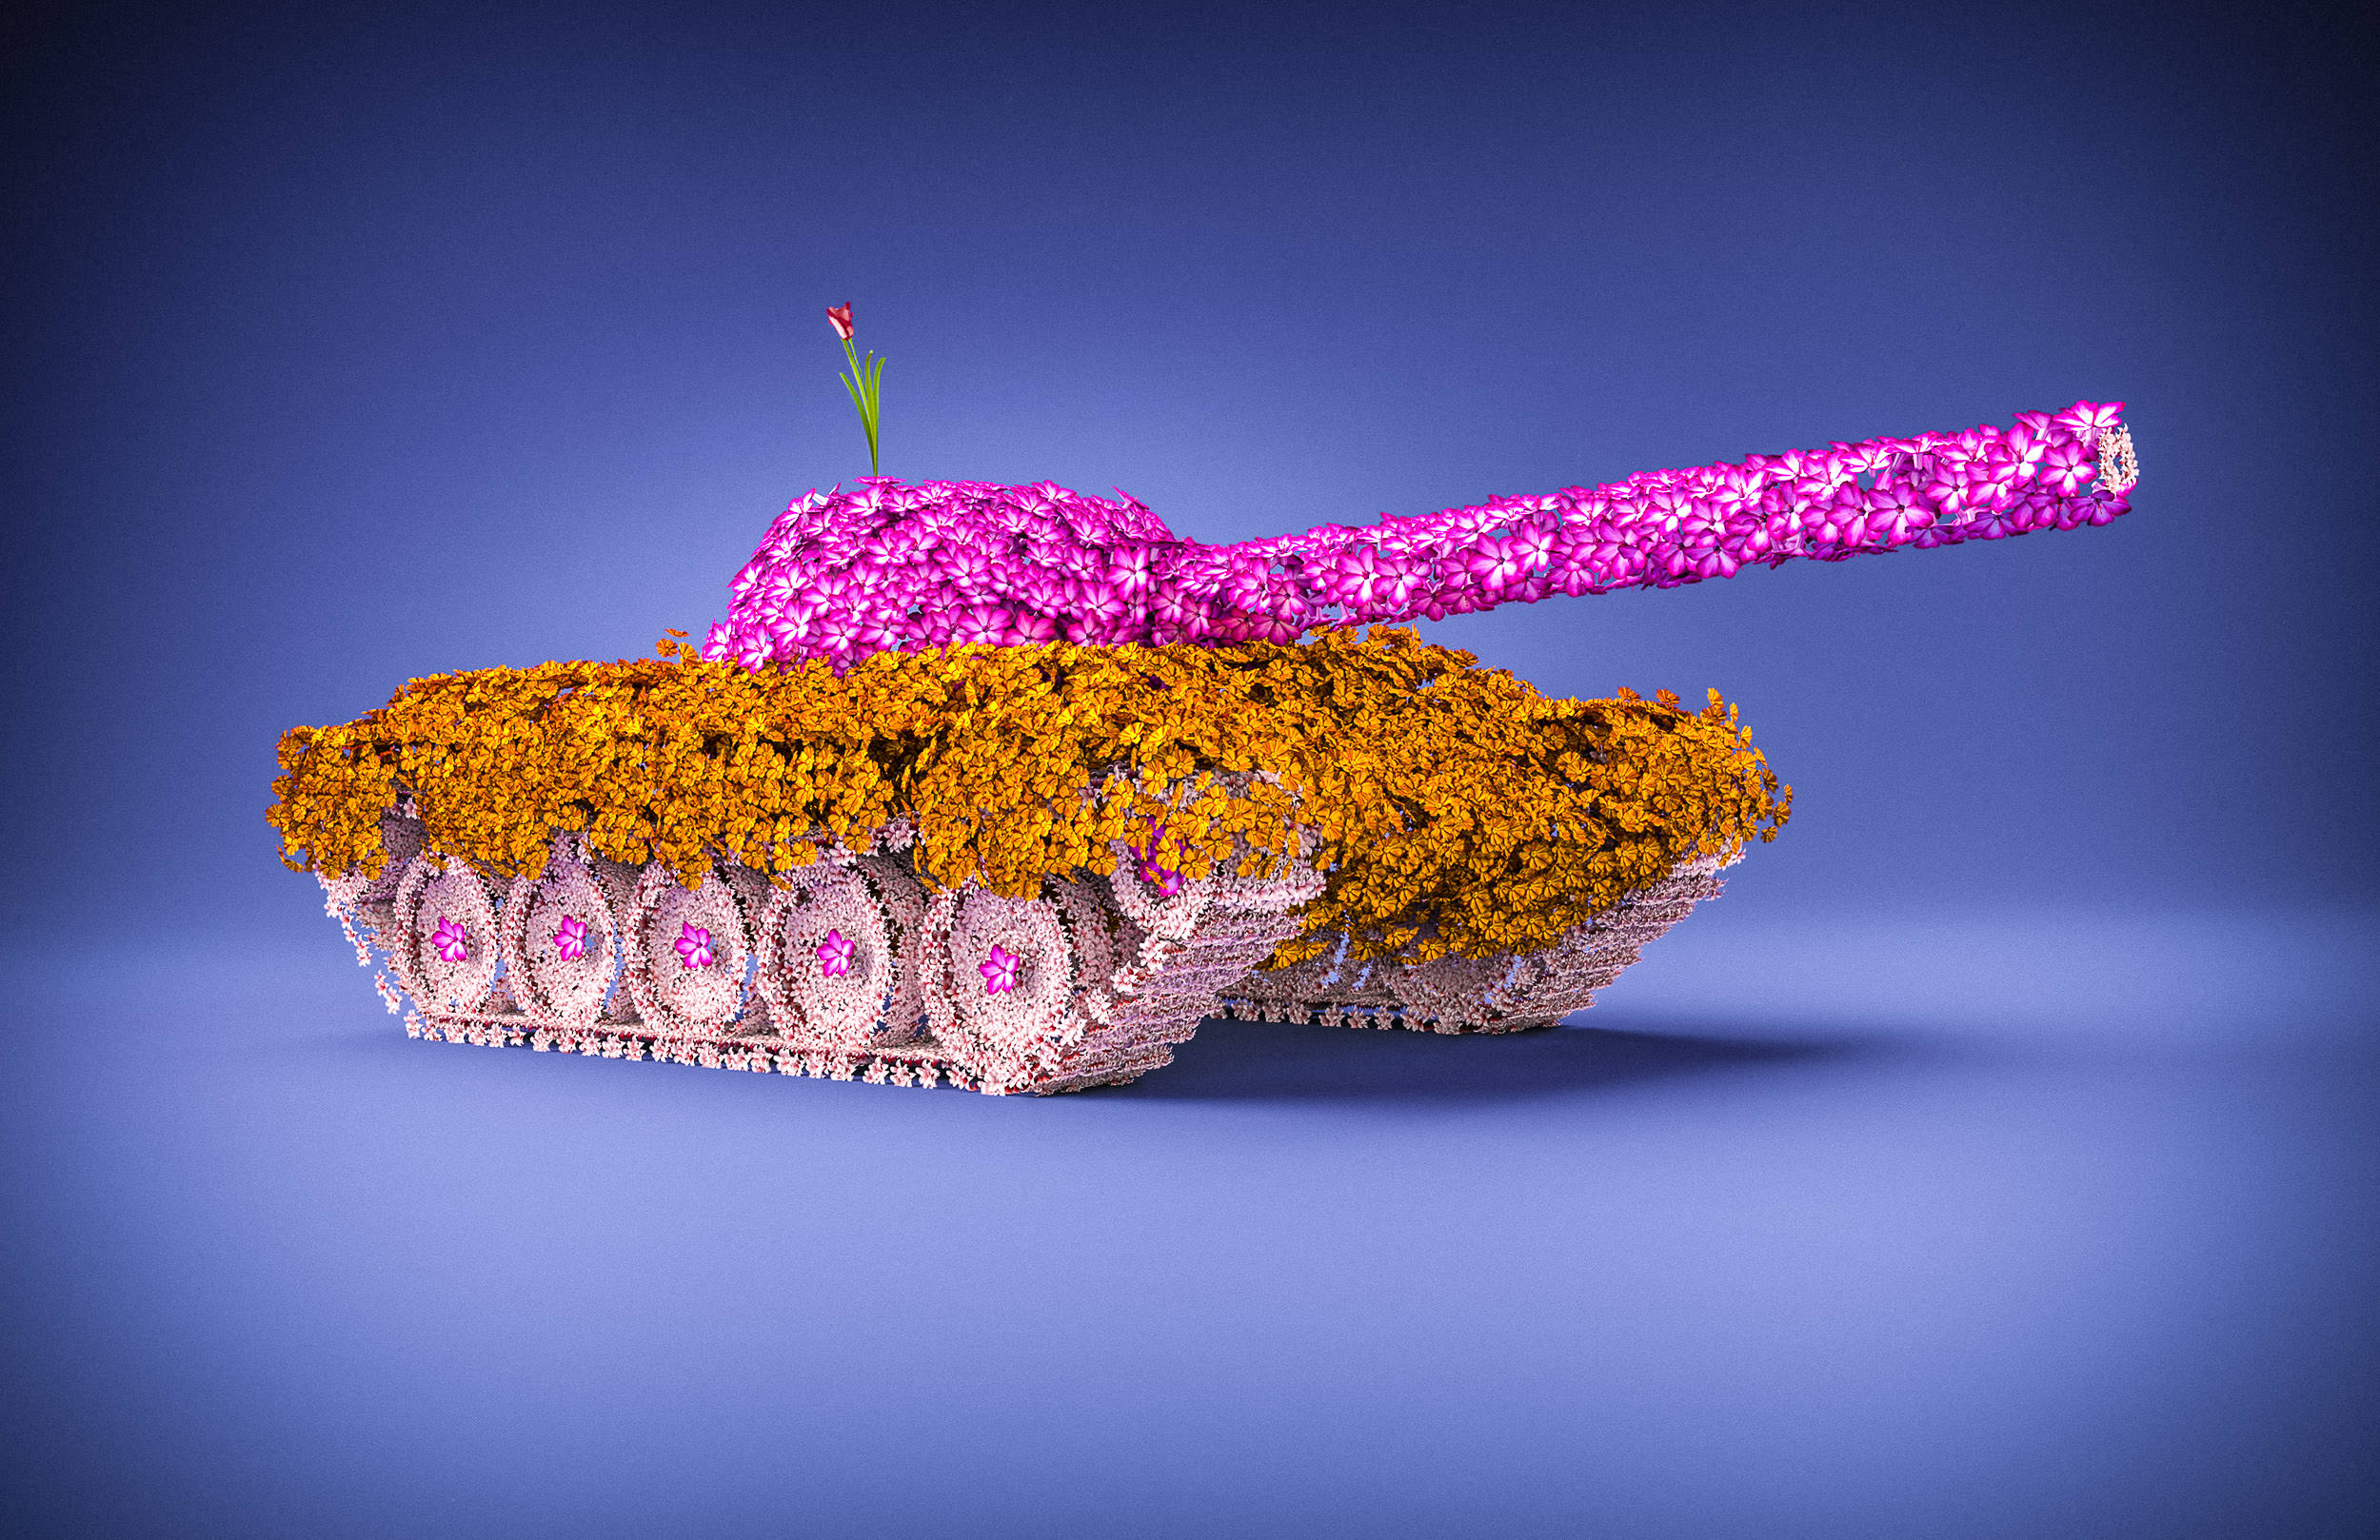 Tanks for the Flowers